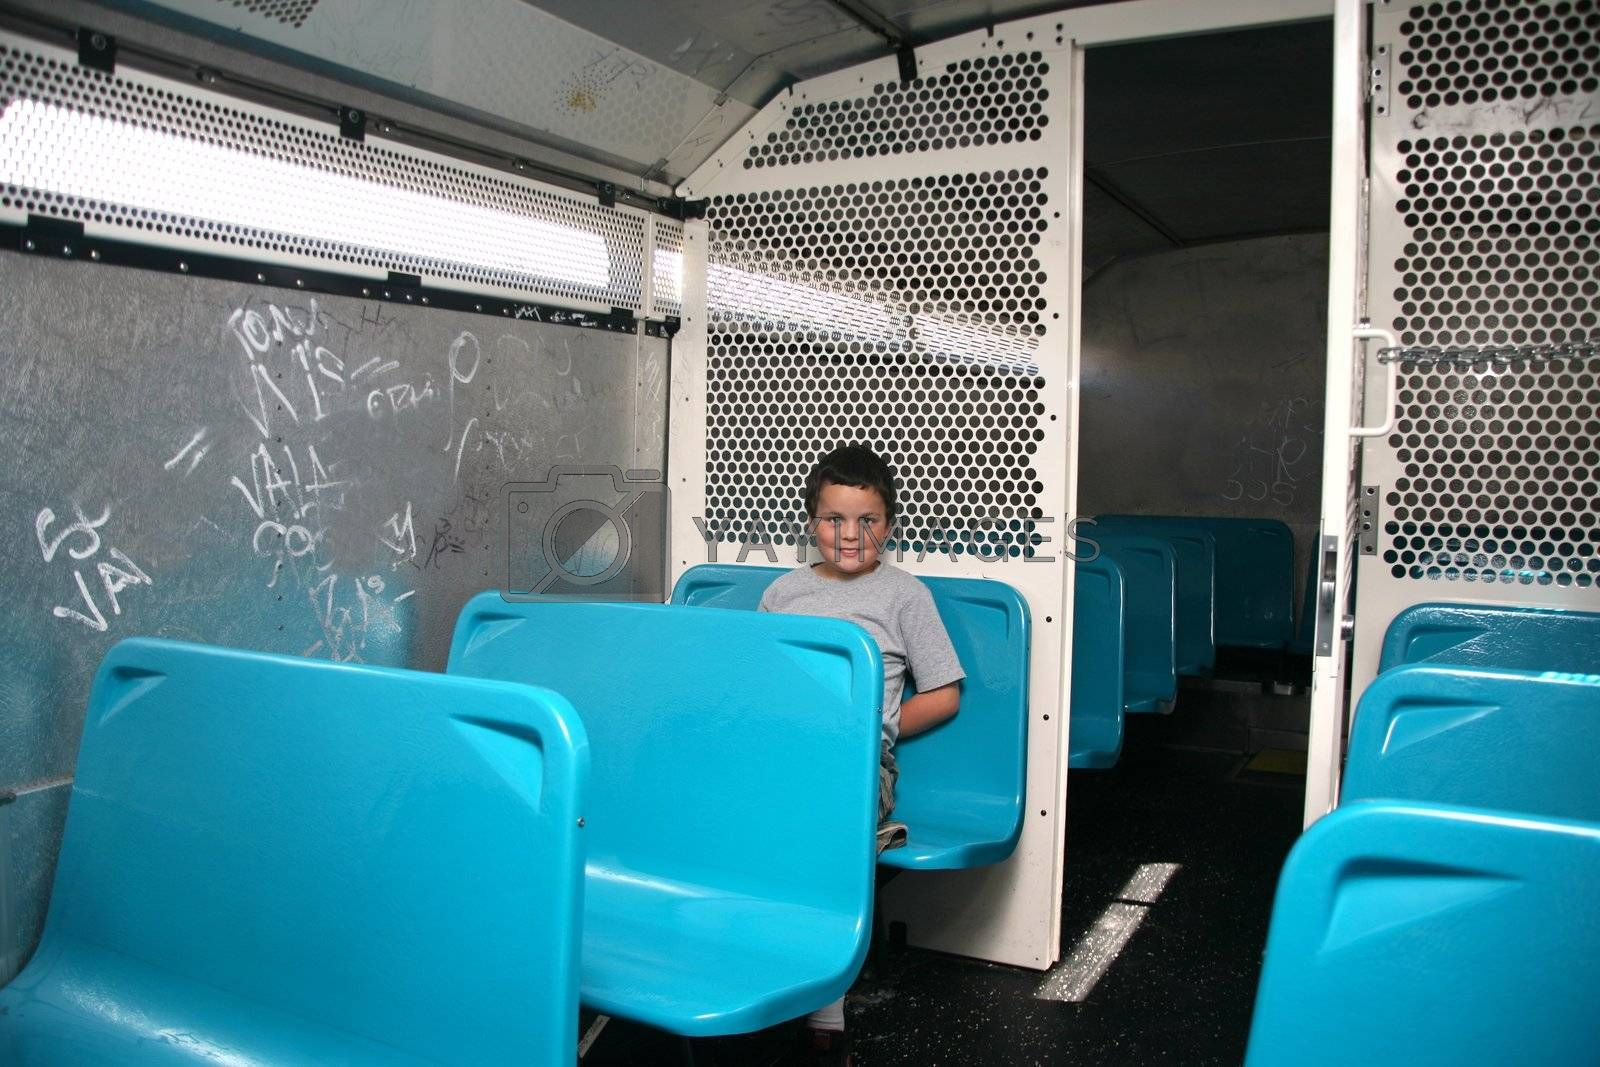 Juvenile delinquent in the police transportation bus